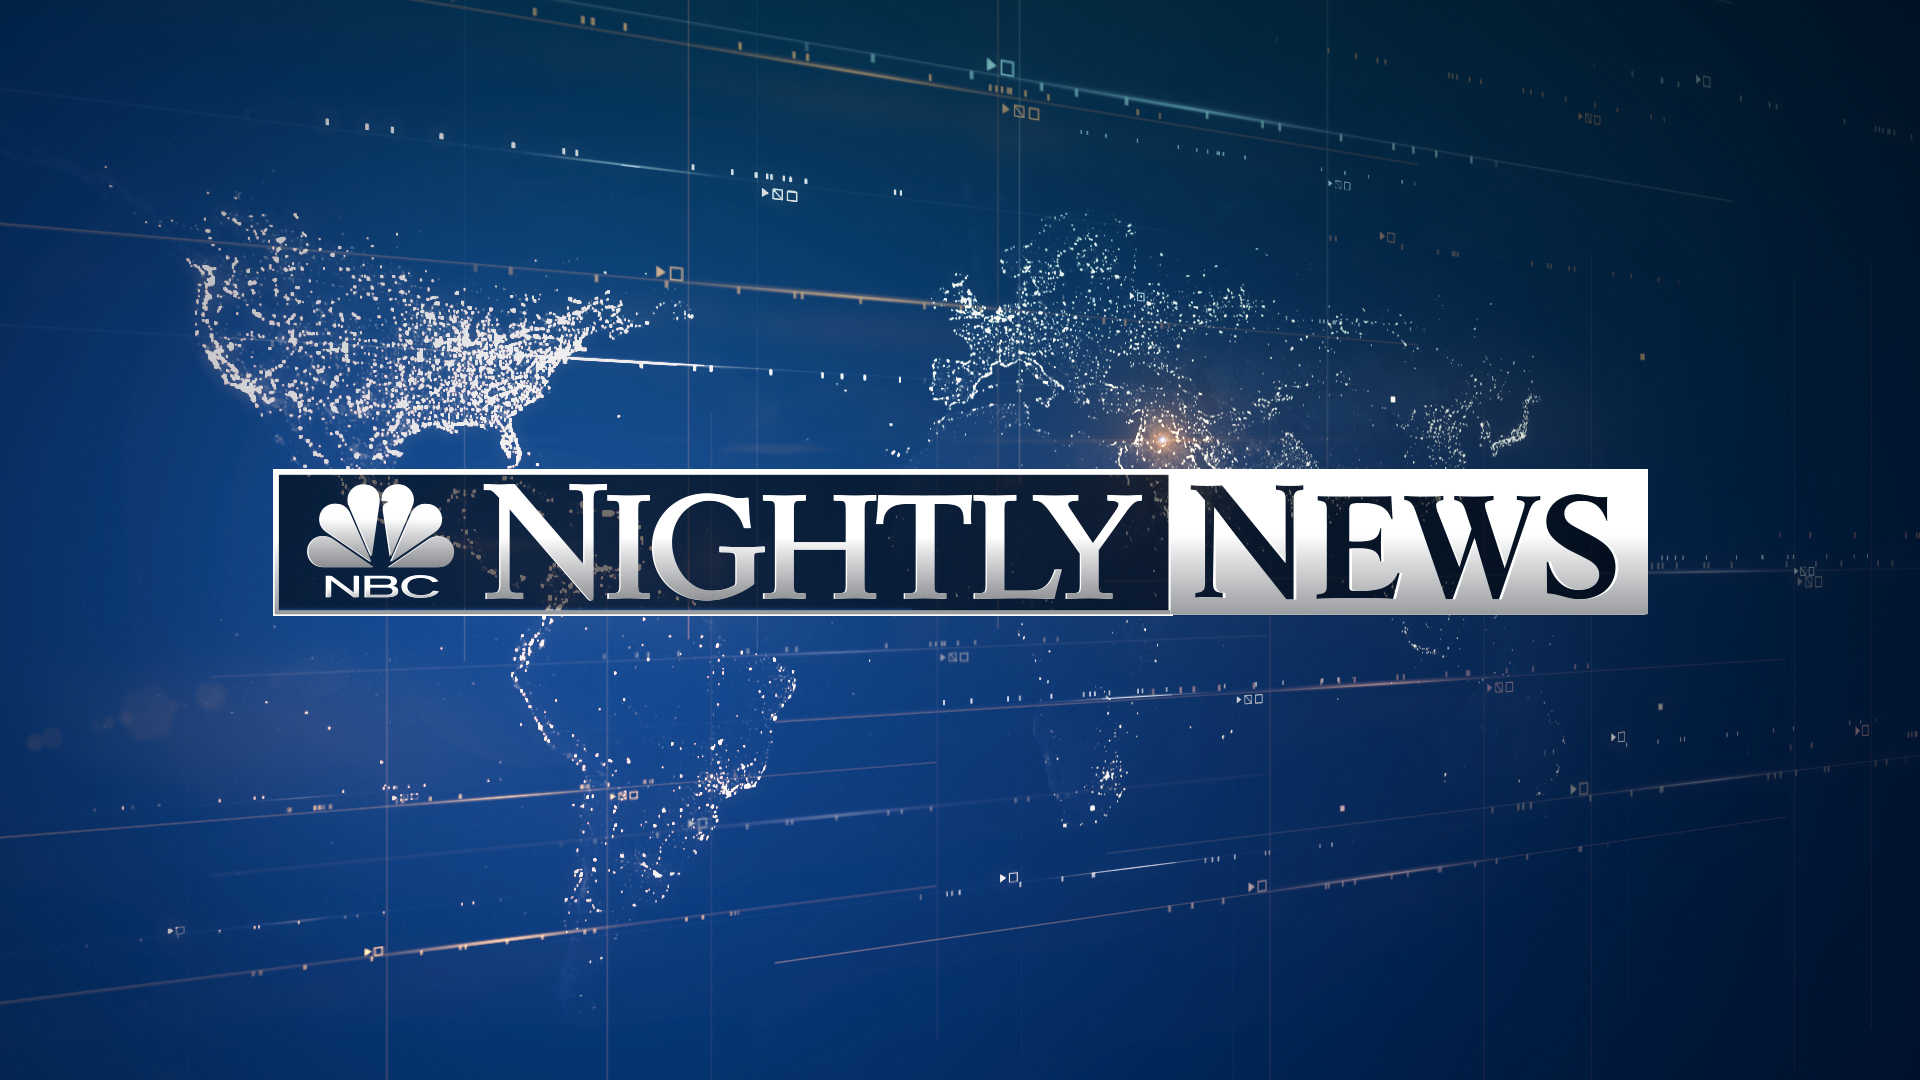 2015-0212-NBC-Nightly-News-About-Image-1920x1080_KO.jpg